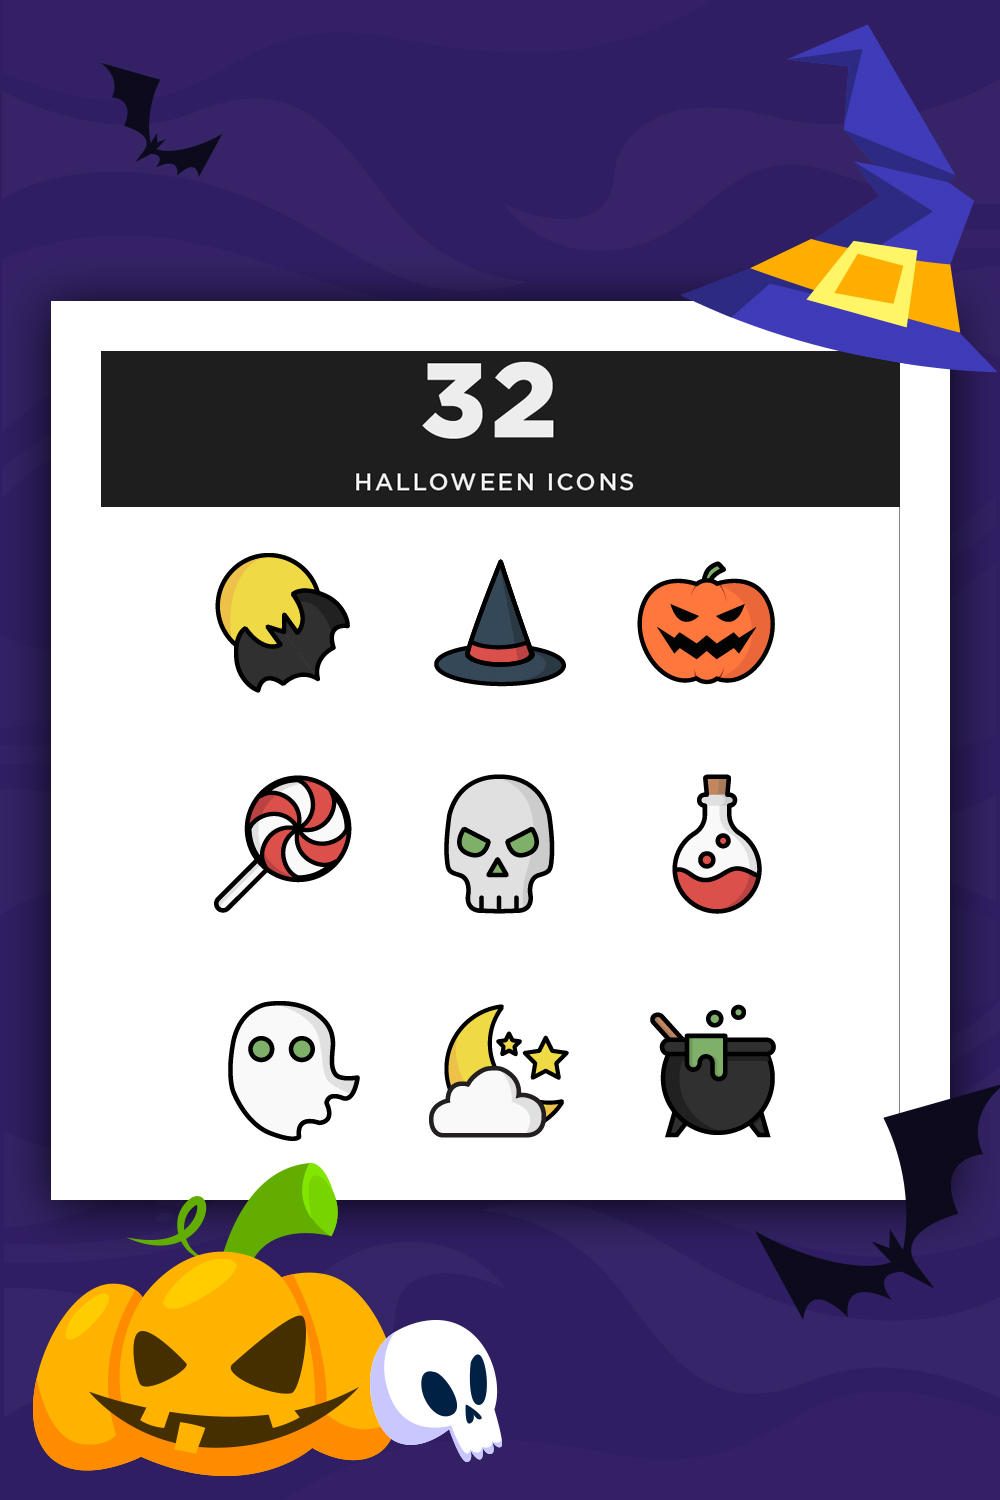 Illustrative Halloween Iconset Template